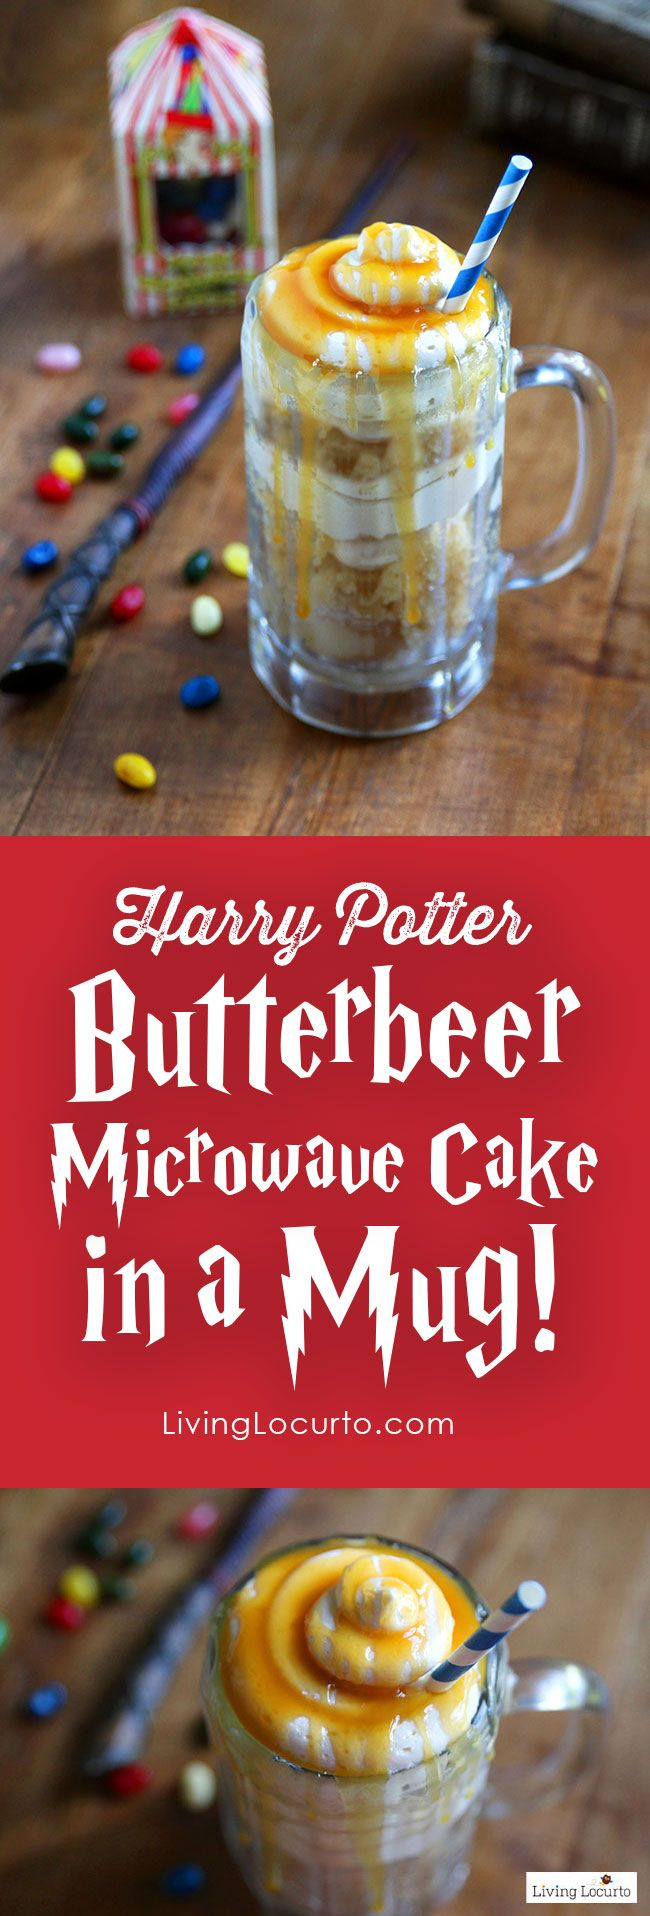 Homemade Harry Potter Butterbeer - Microwave Cake in a Mug. CUTE and easy recipe that's perfect for a Harry Potter Themed Party. @livinglocurto